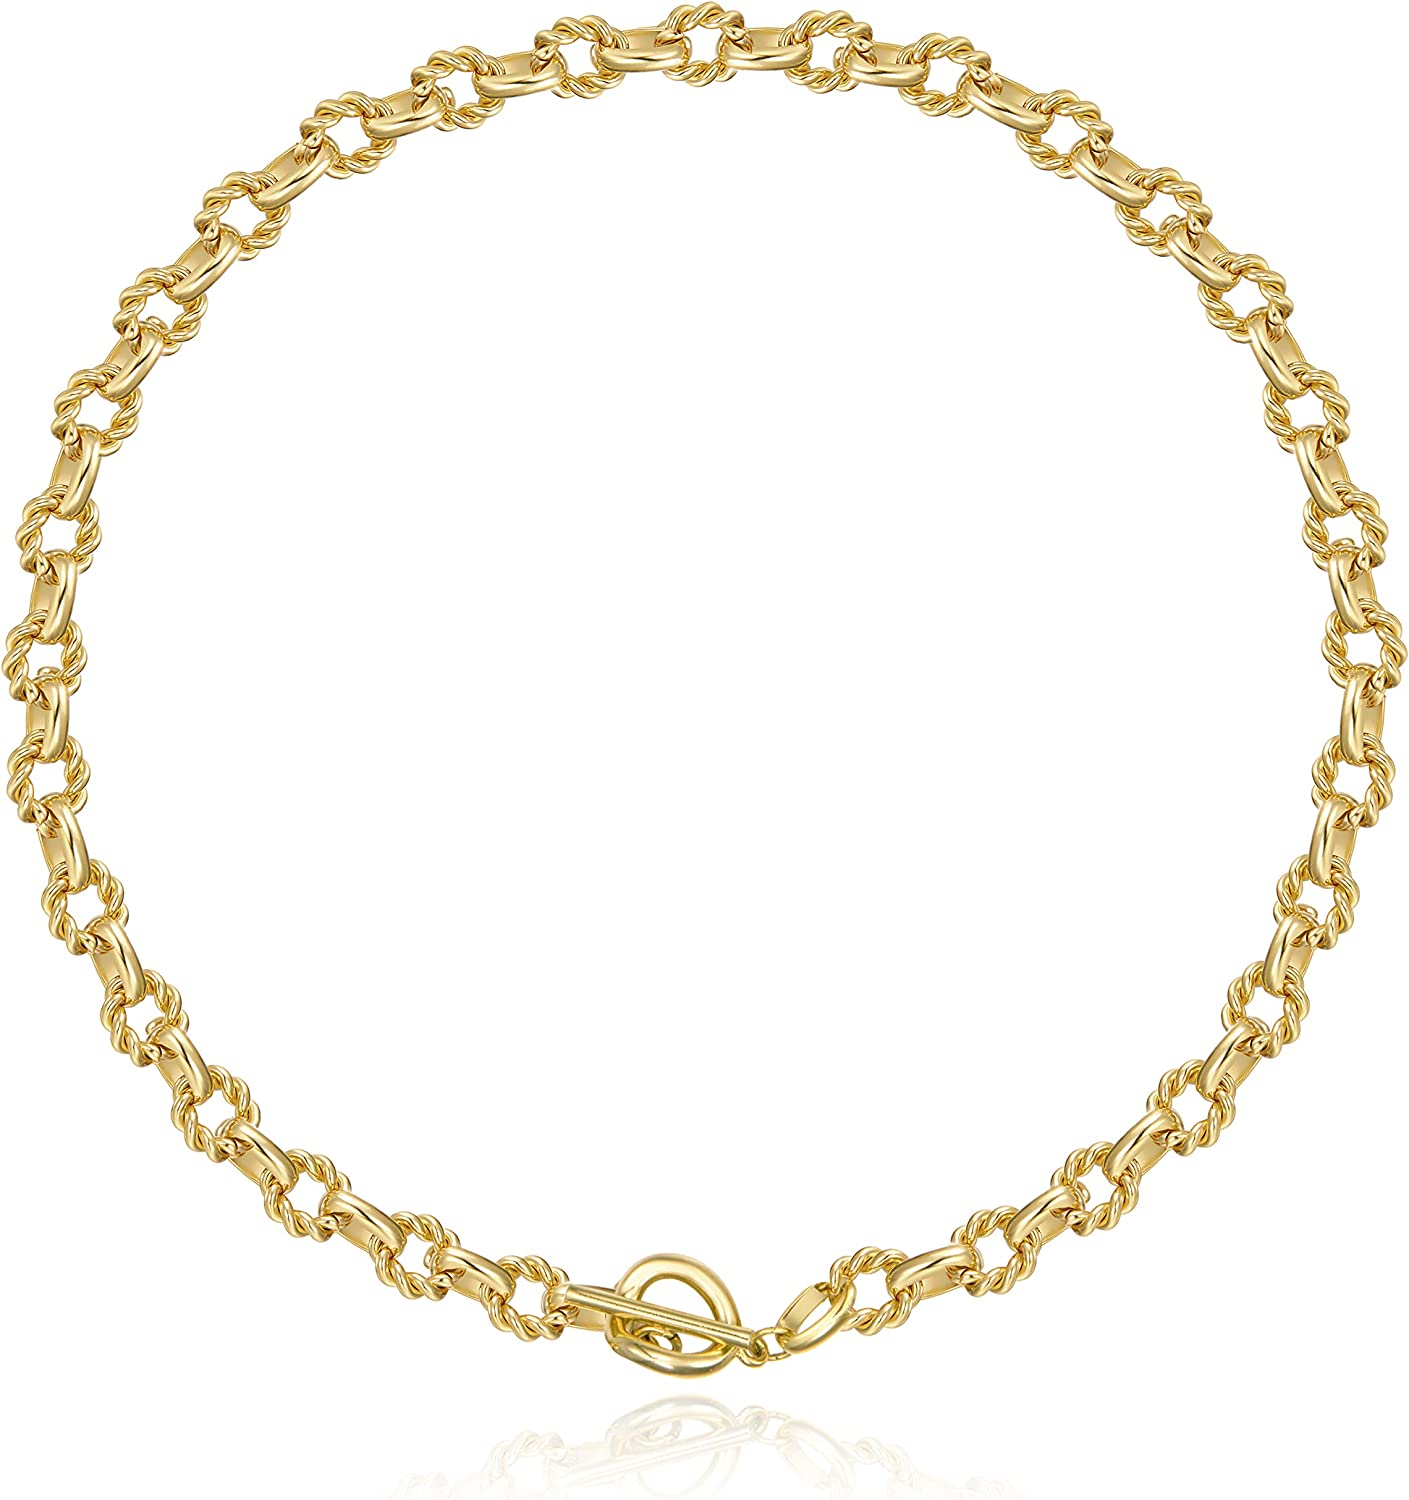 ACC PLANET Statement Max 41% OFF Gold Plated Super-cheap 4mm Thick Oval Chain Link Choke